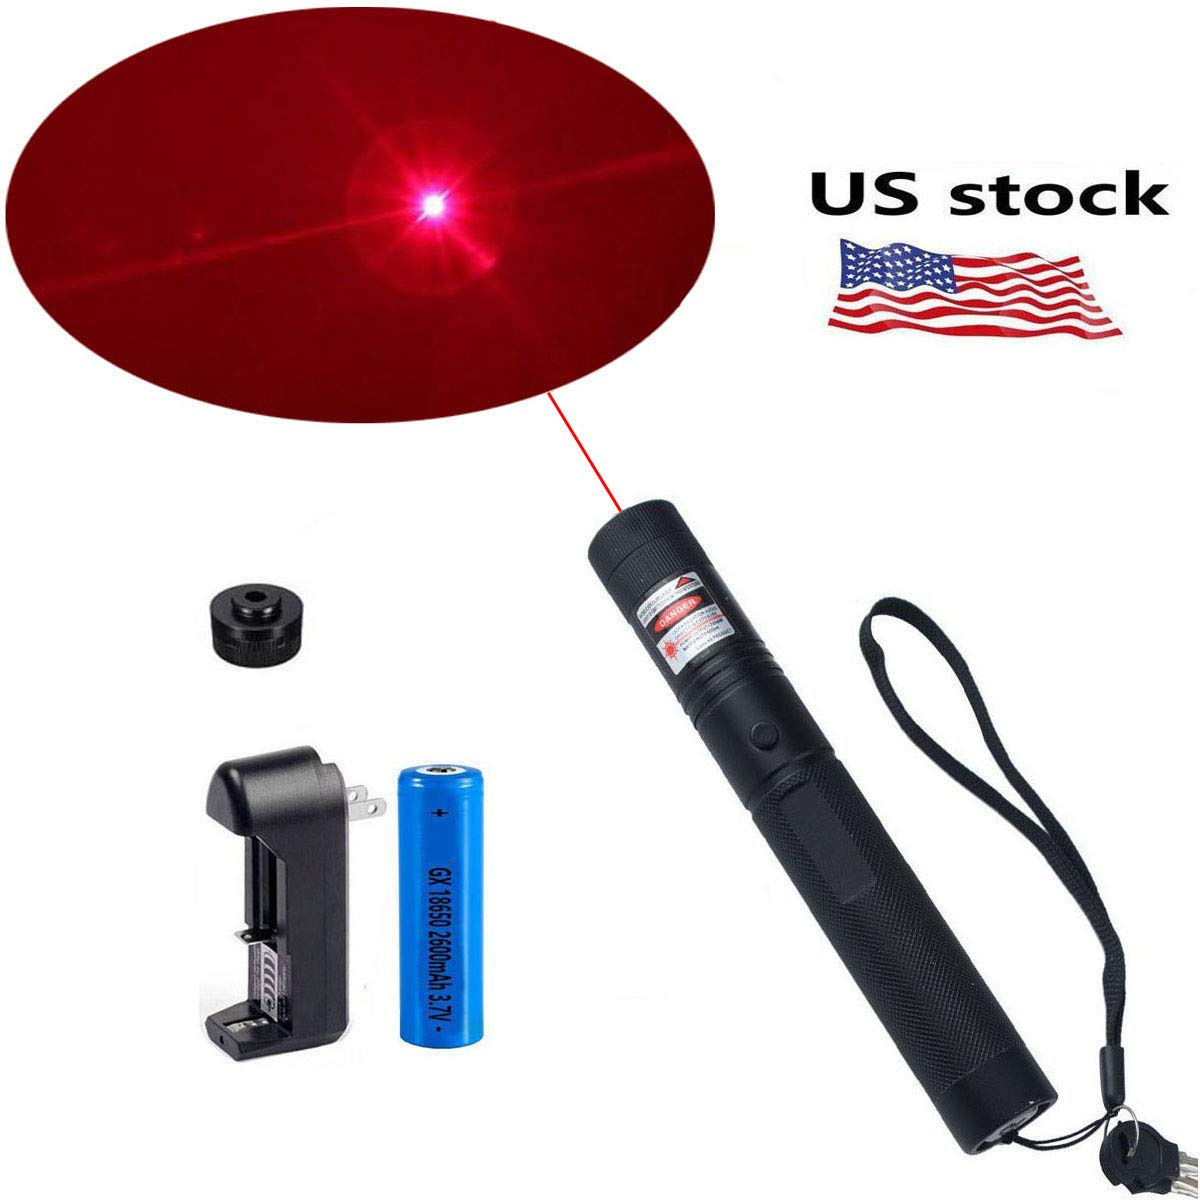 Jemine Tactical Hunting Rifle Scope Sight Red Laser Pen Demo Remote Pen Pointer Projector Travel Outdoor Flashlight LED Interactive Baton Funny Laser Toy